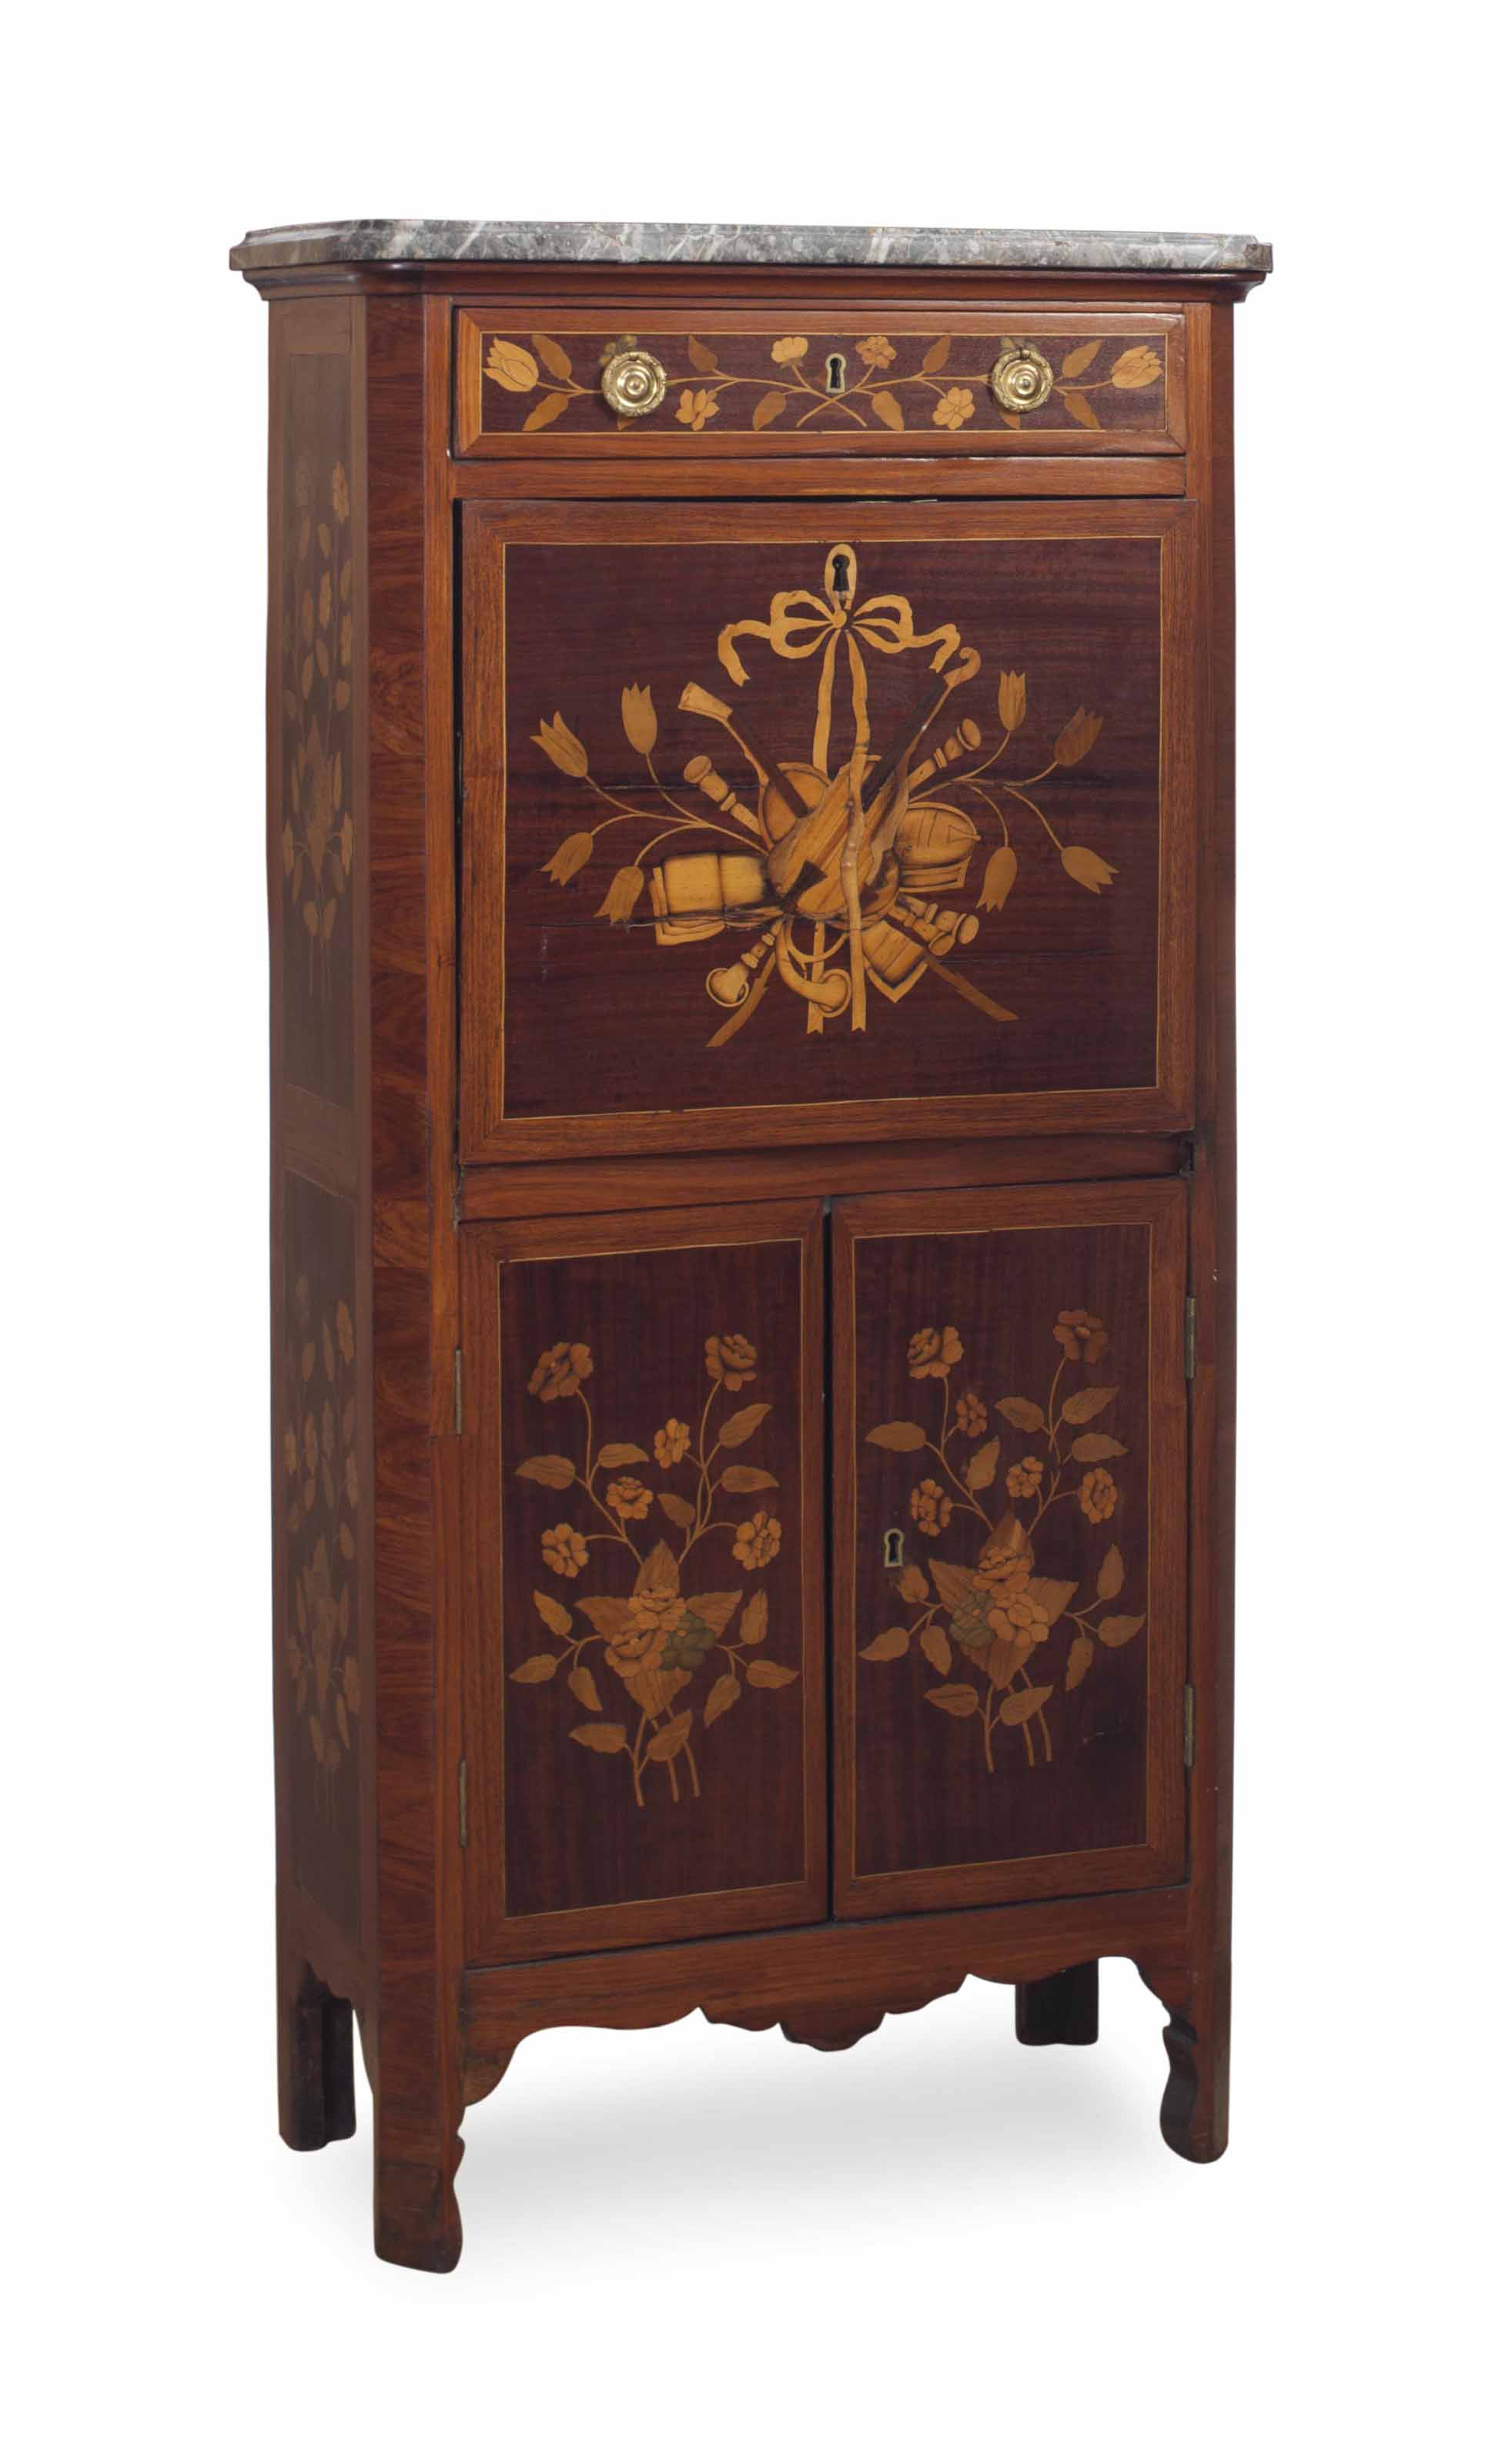 A LOUIS XVI KINGWOOD, TULIPWOOD, MARQUETRY AND MARBLE-TOP SMALL SECRETAIRE A ABATTANT,